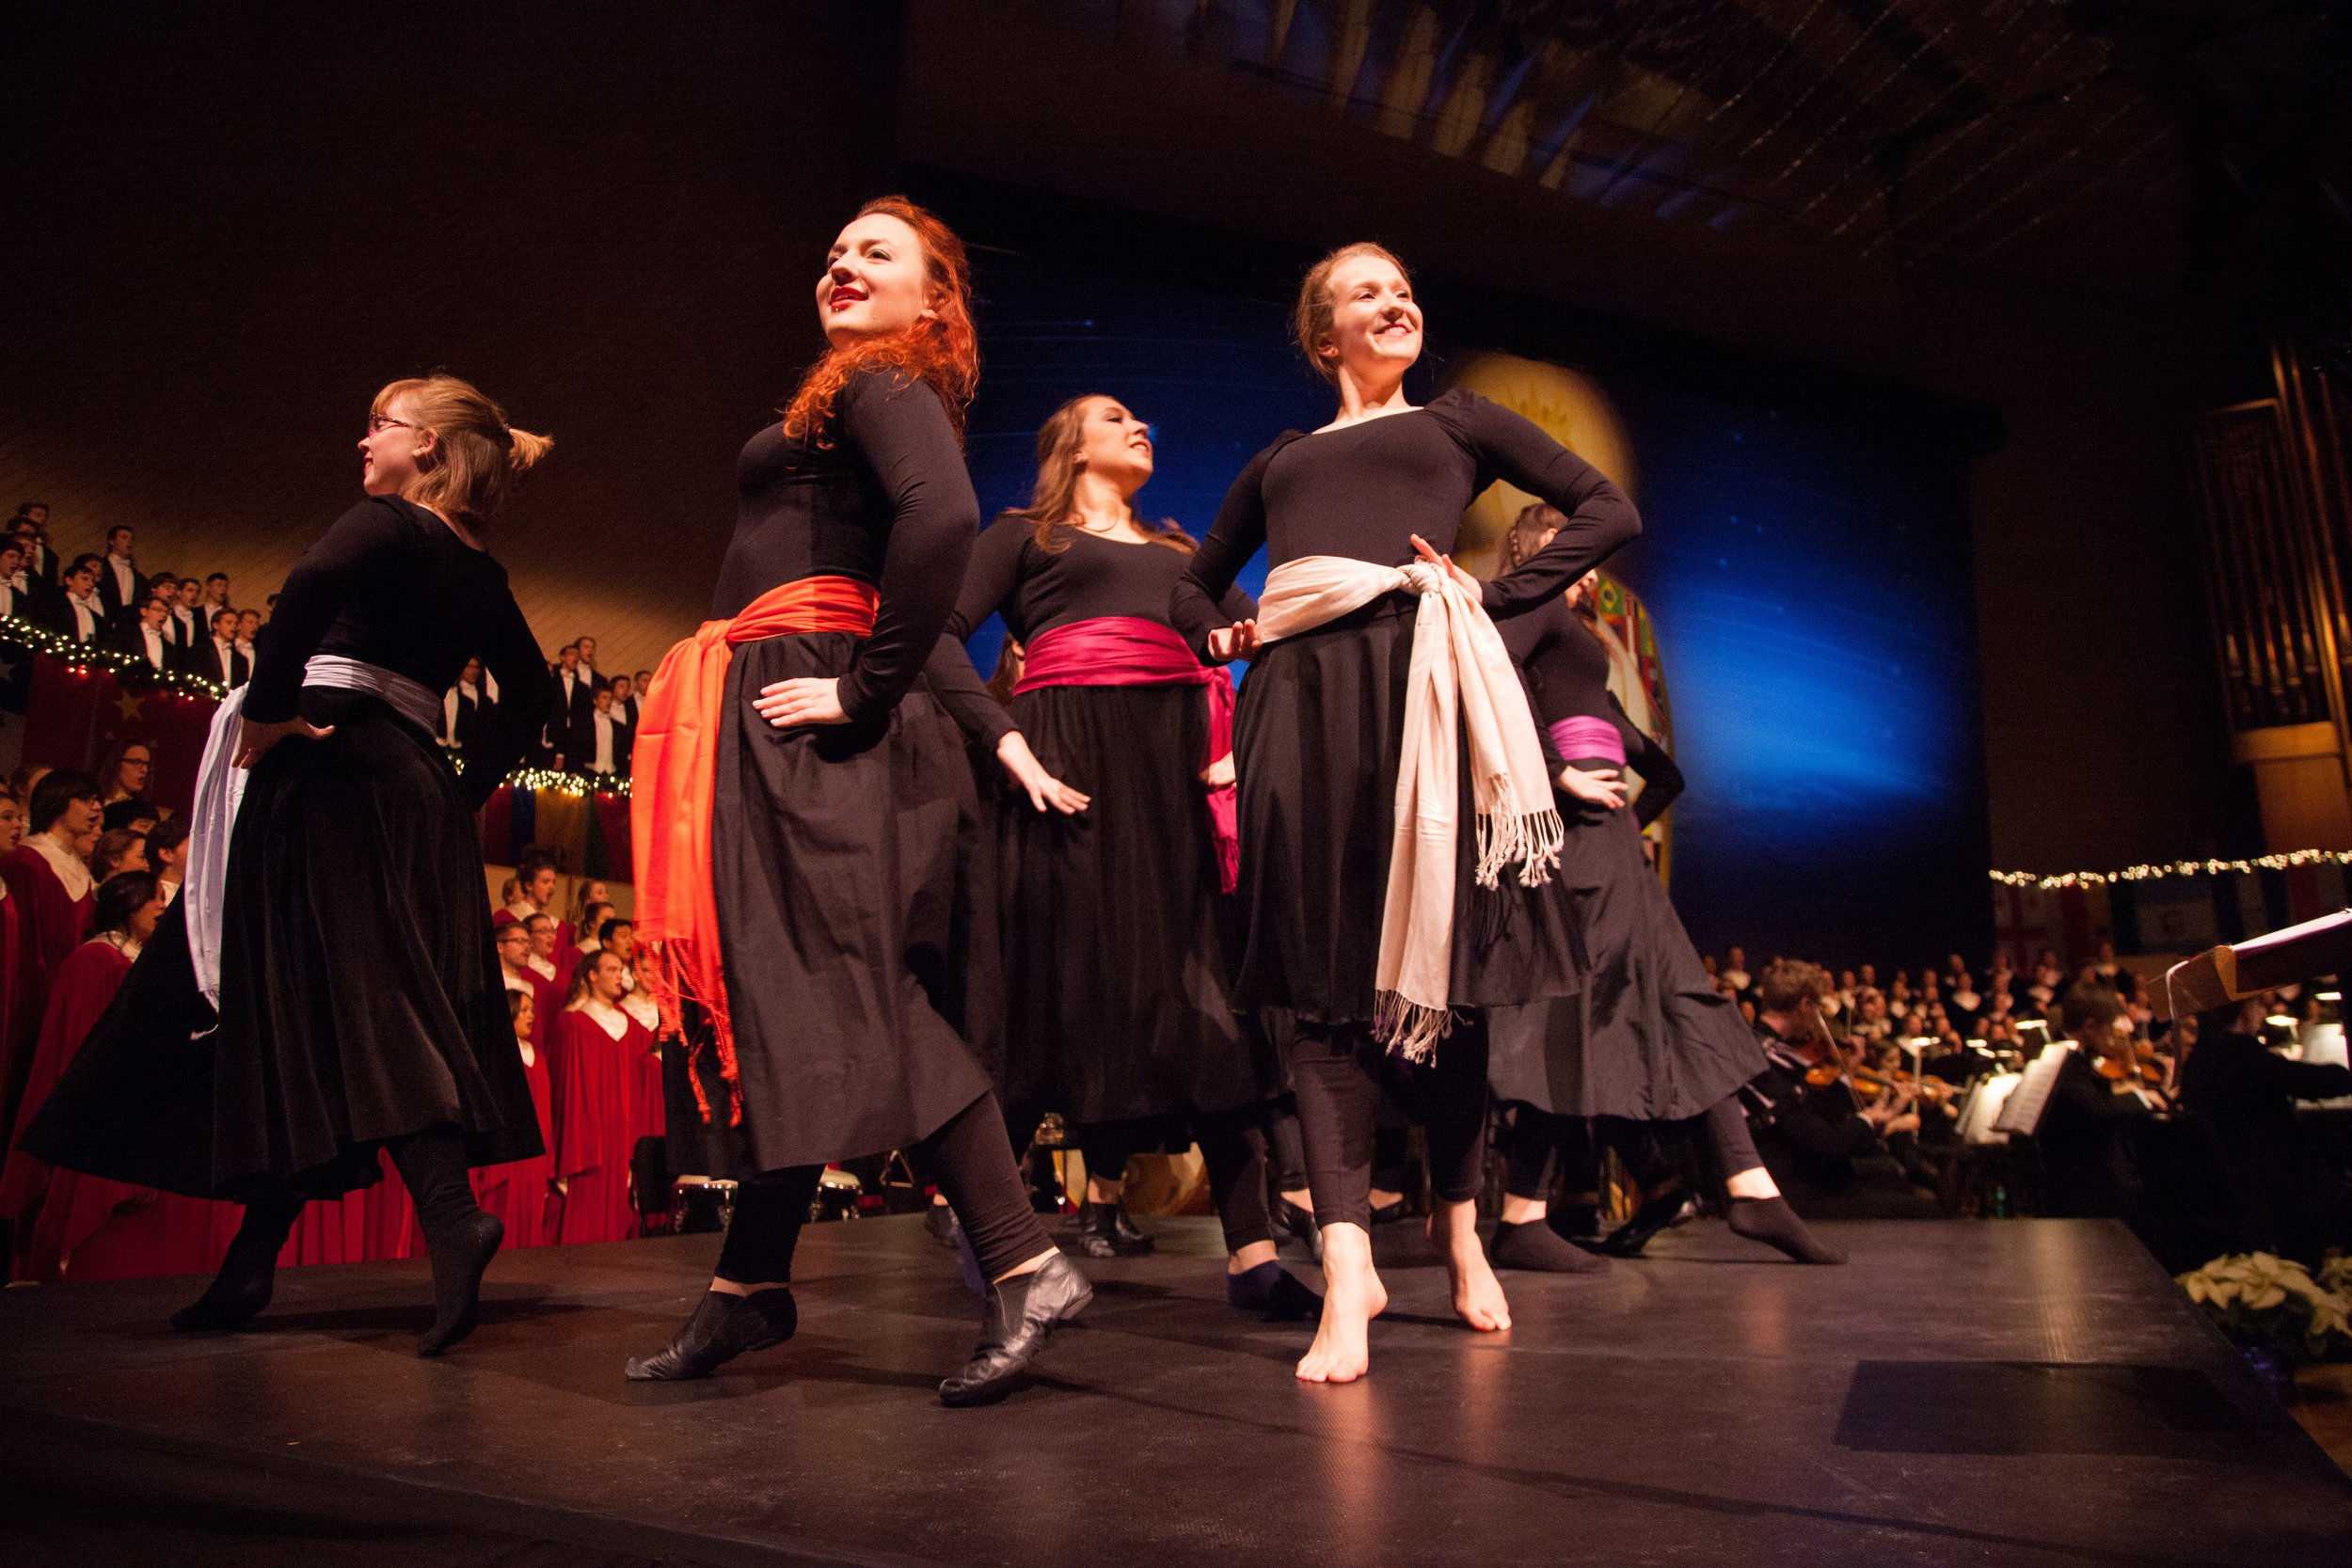 This year's show included some unique additions to the show, including some Spanish dancing.